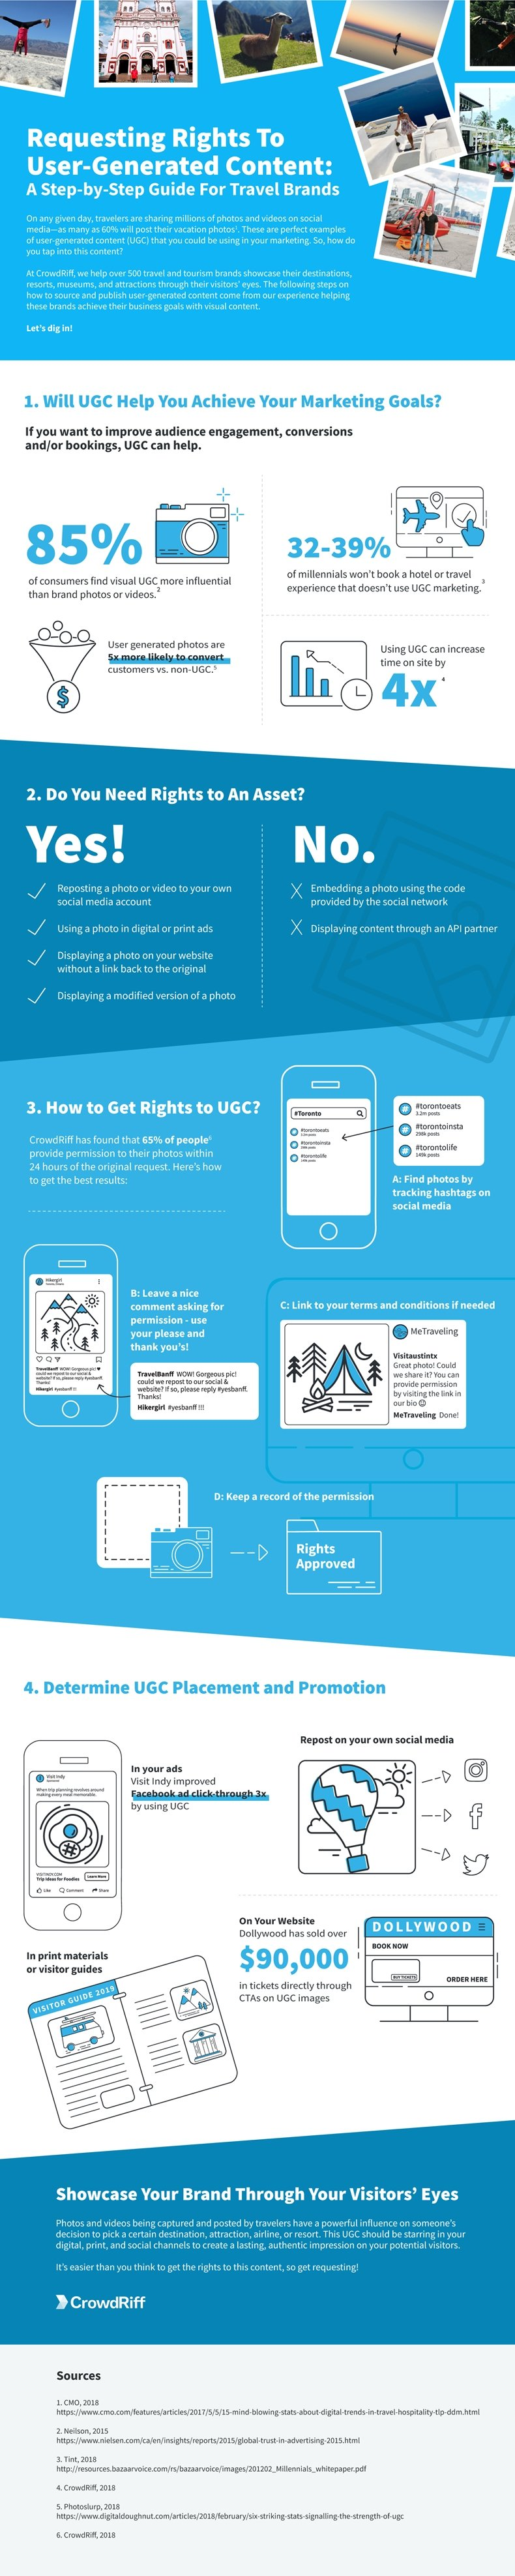 Requesting Rights to User-Generated Content: A Guide for Travel Brands (and Others) [Infographic] : MarketingProfs Article 1